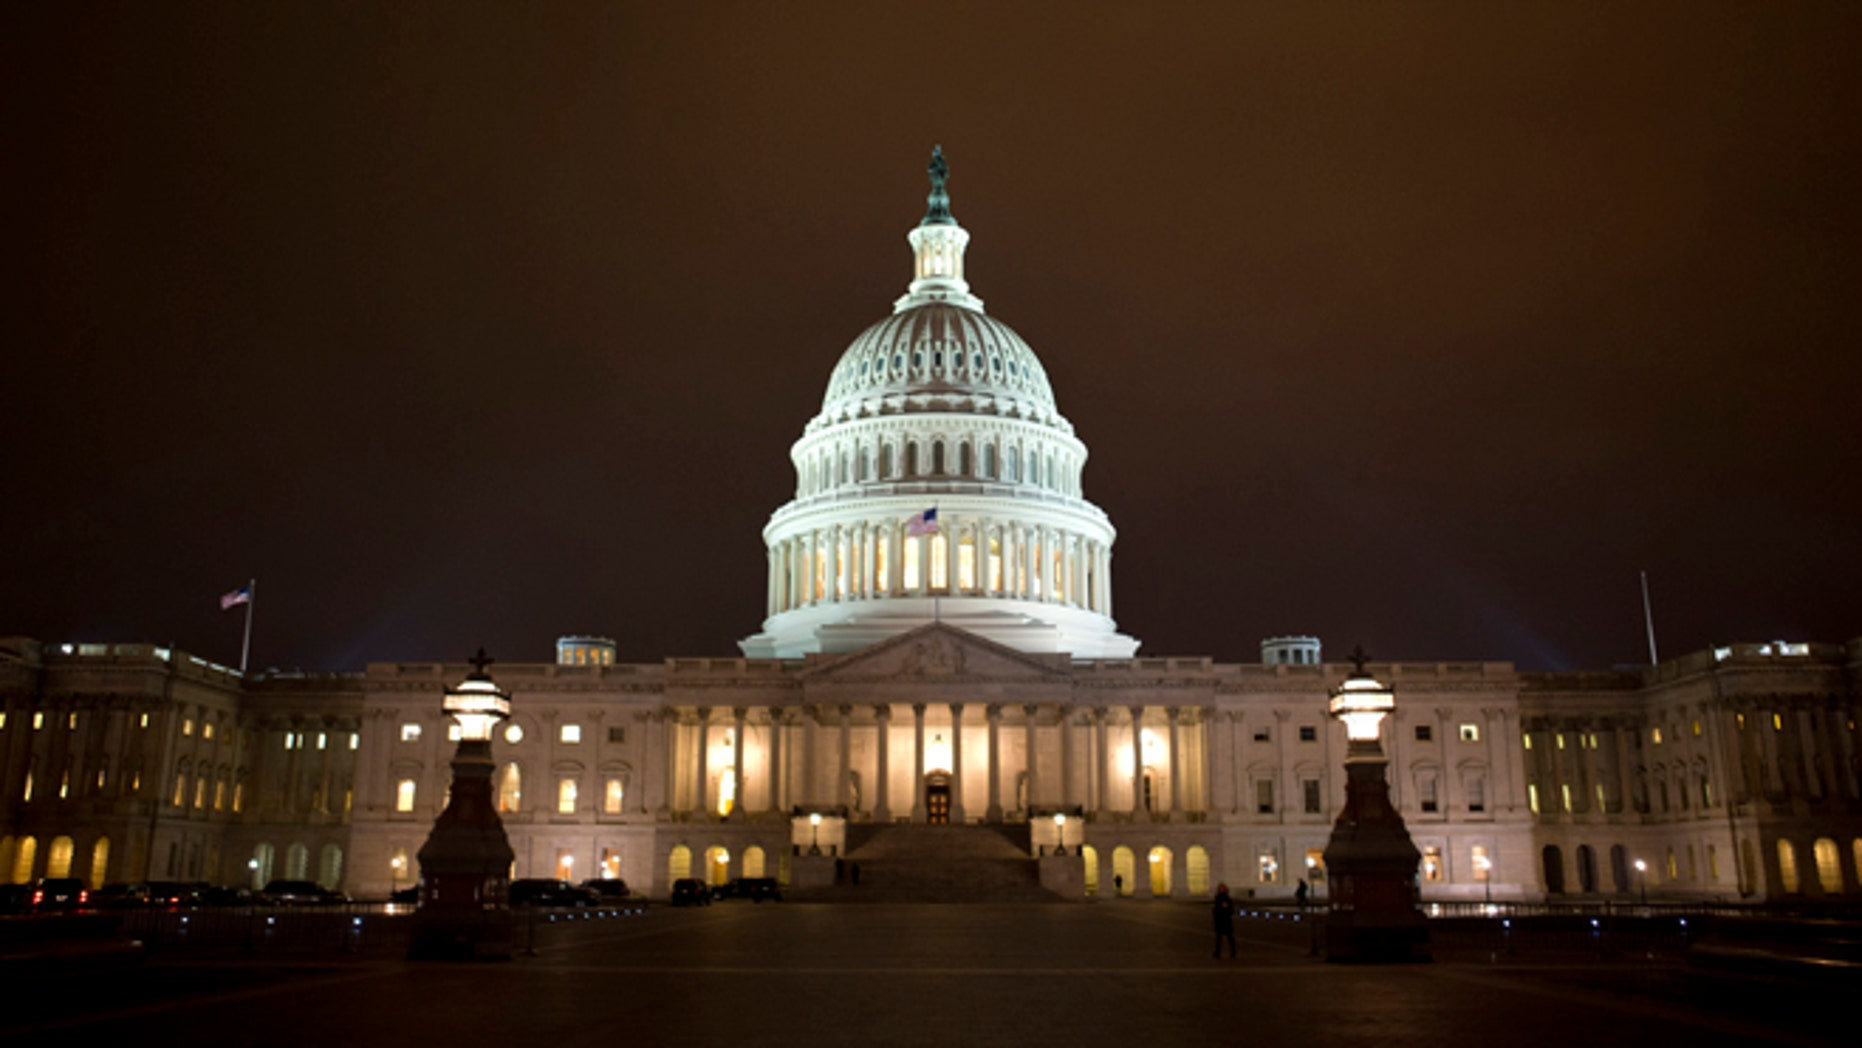 Jan. 1, 2013: The lights of the U.S. Capitol remain lit into the night.